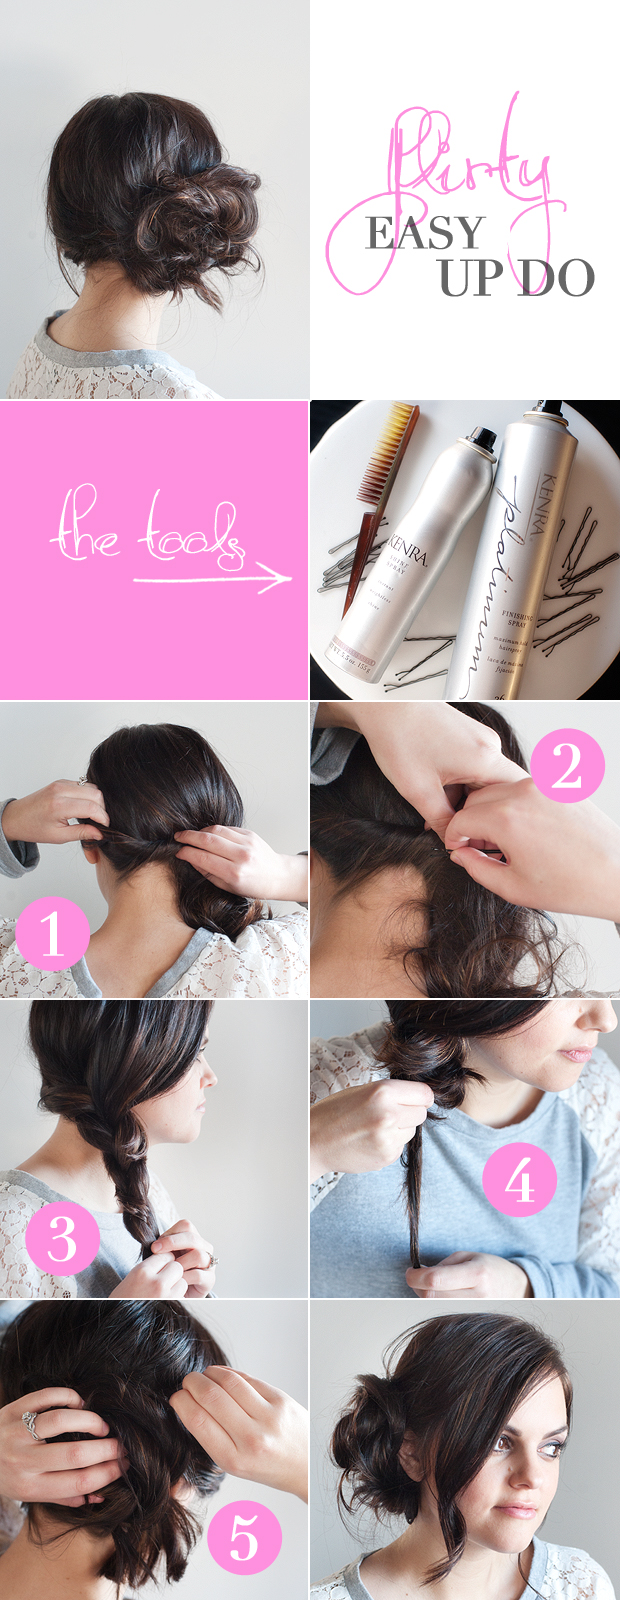 flirty_easy_up_do